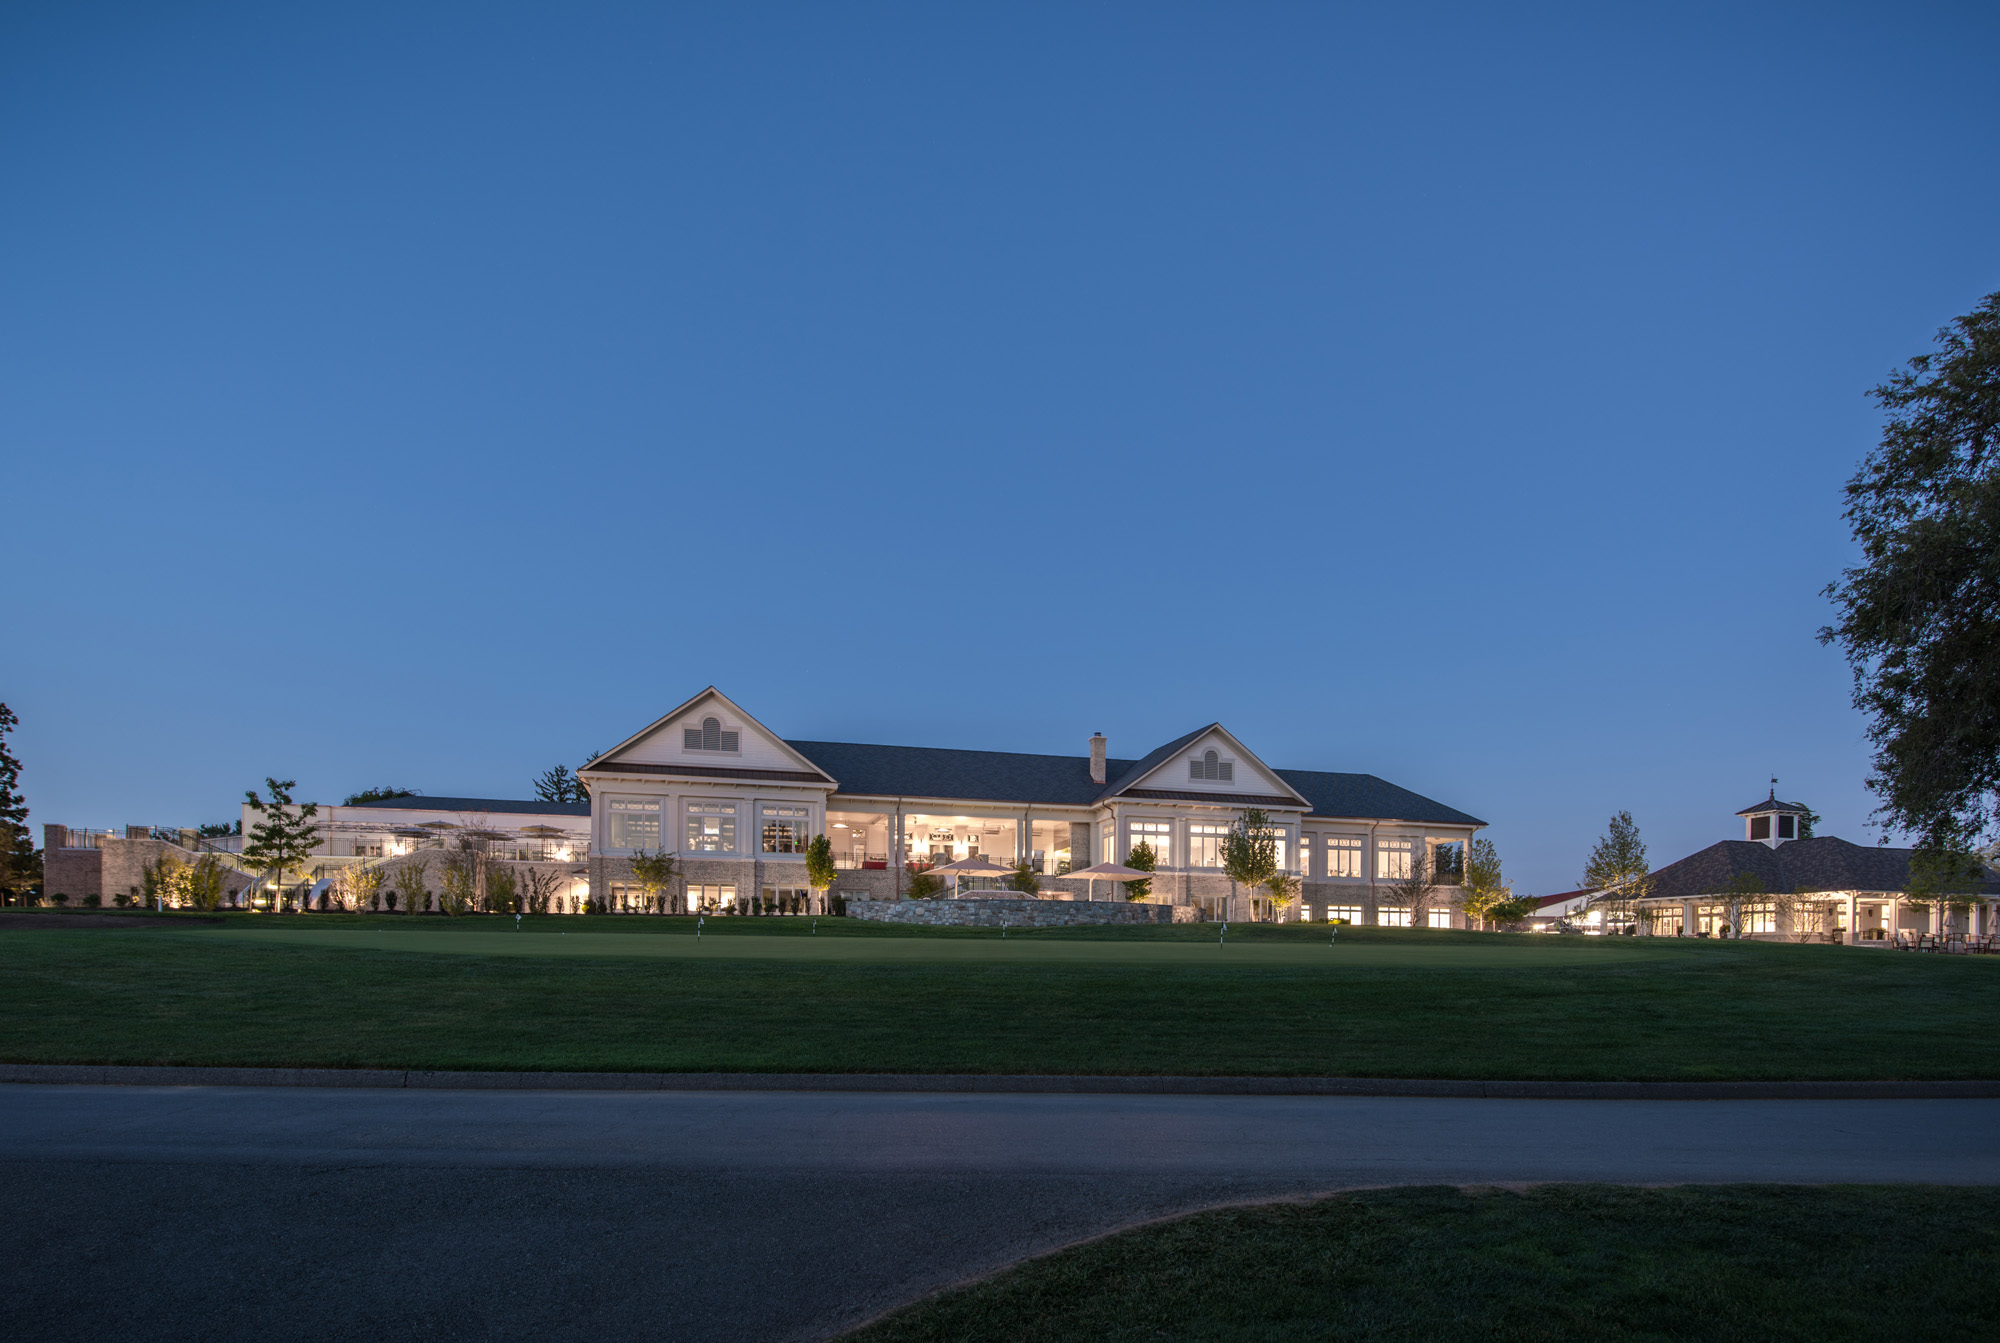 Woodmont Country Club Exterior Image203583.jpg